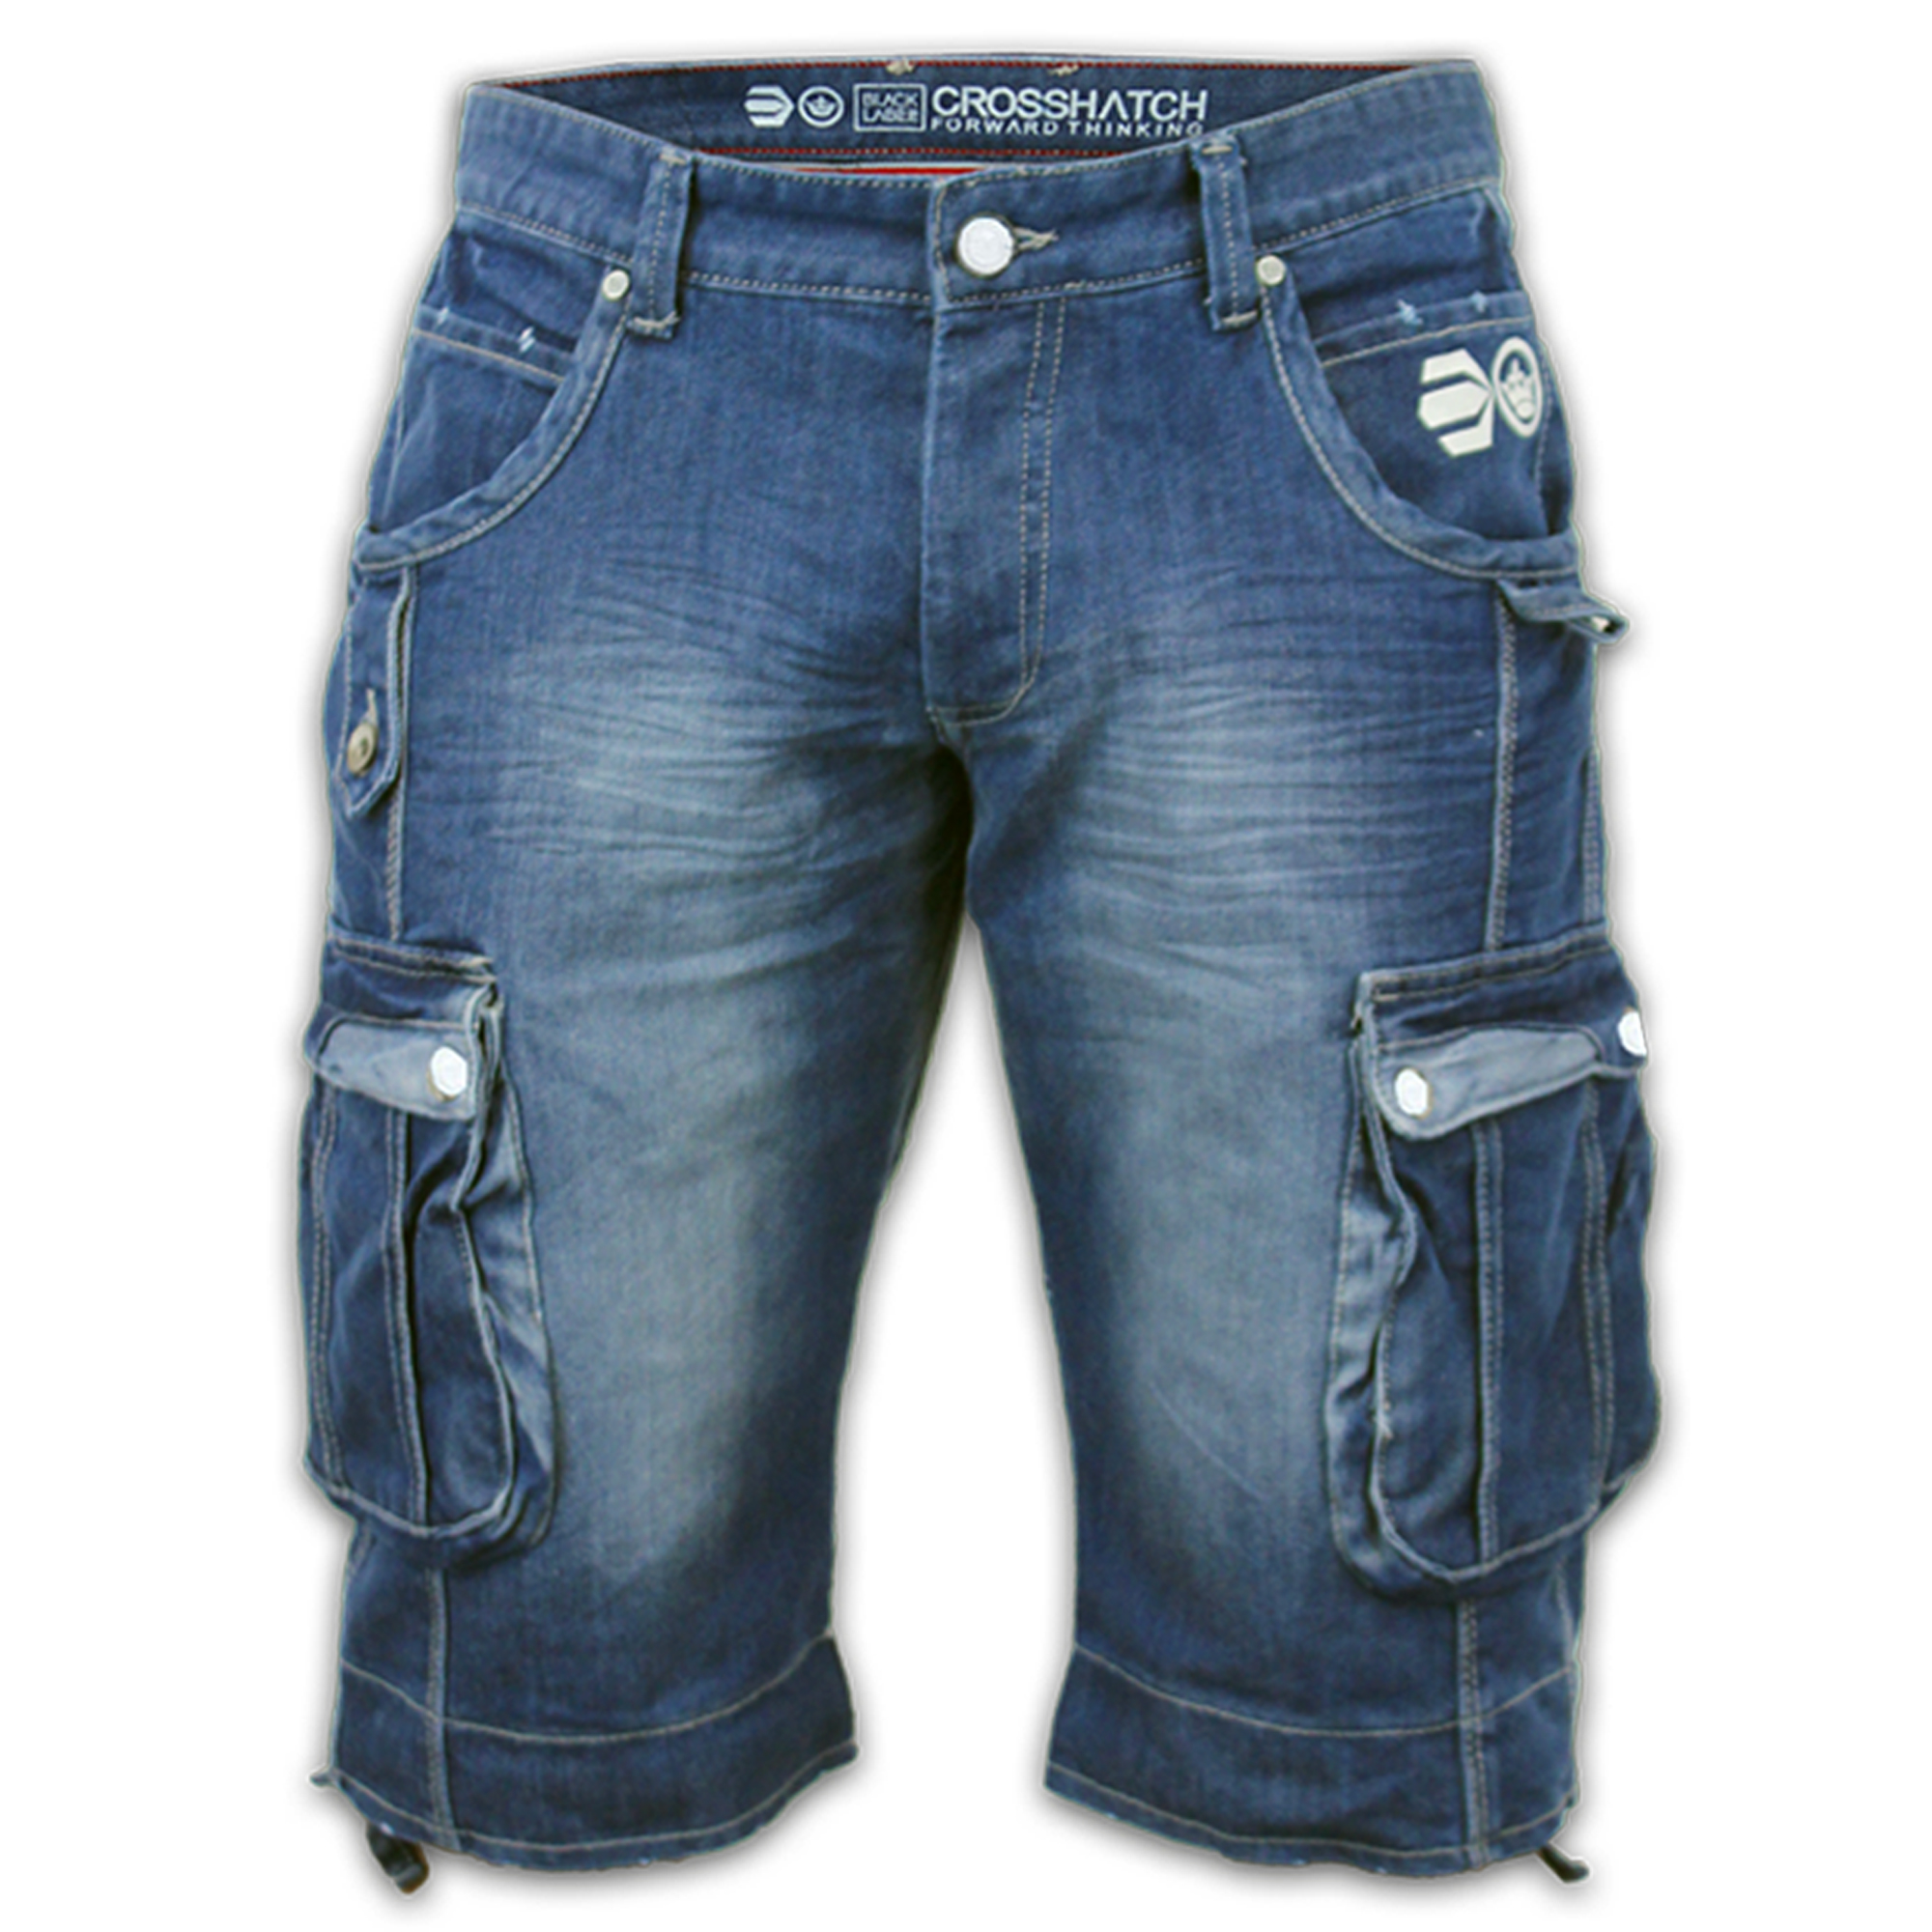 mens denim crosshatch shorts cargo combat jeans 3 4 roll. Black Bedroom Furniture Sets. Home Design Ideas